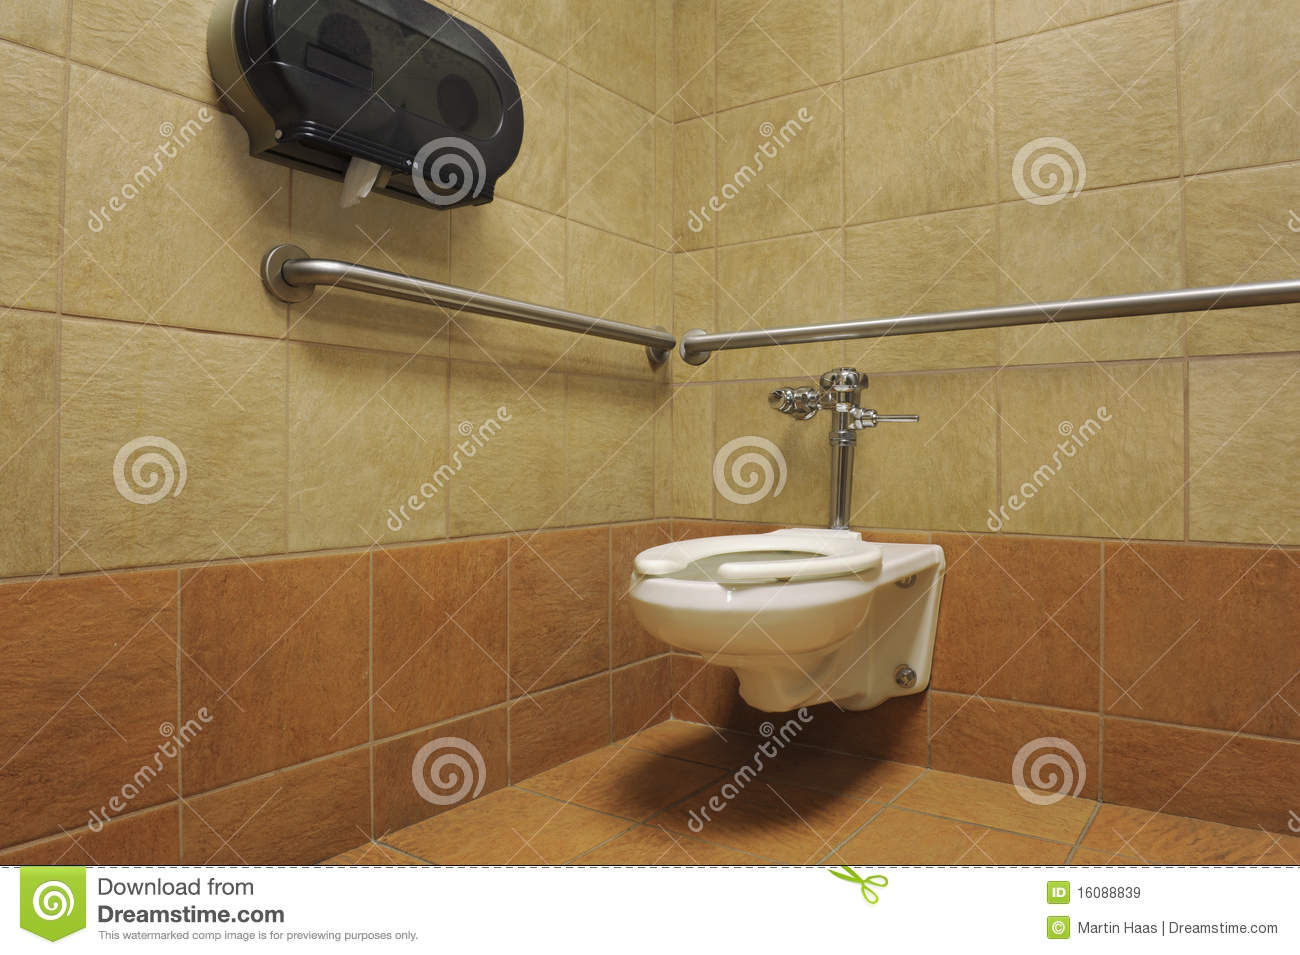 Toilet In A Public Restroom Stall Royalty Free Stock Images   Image